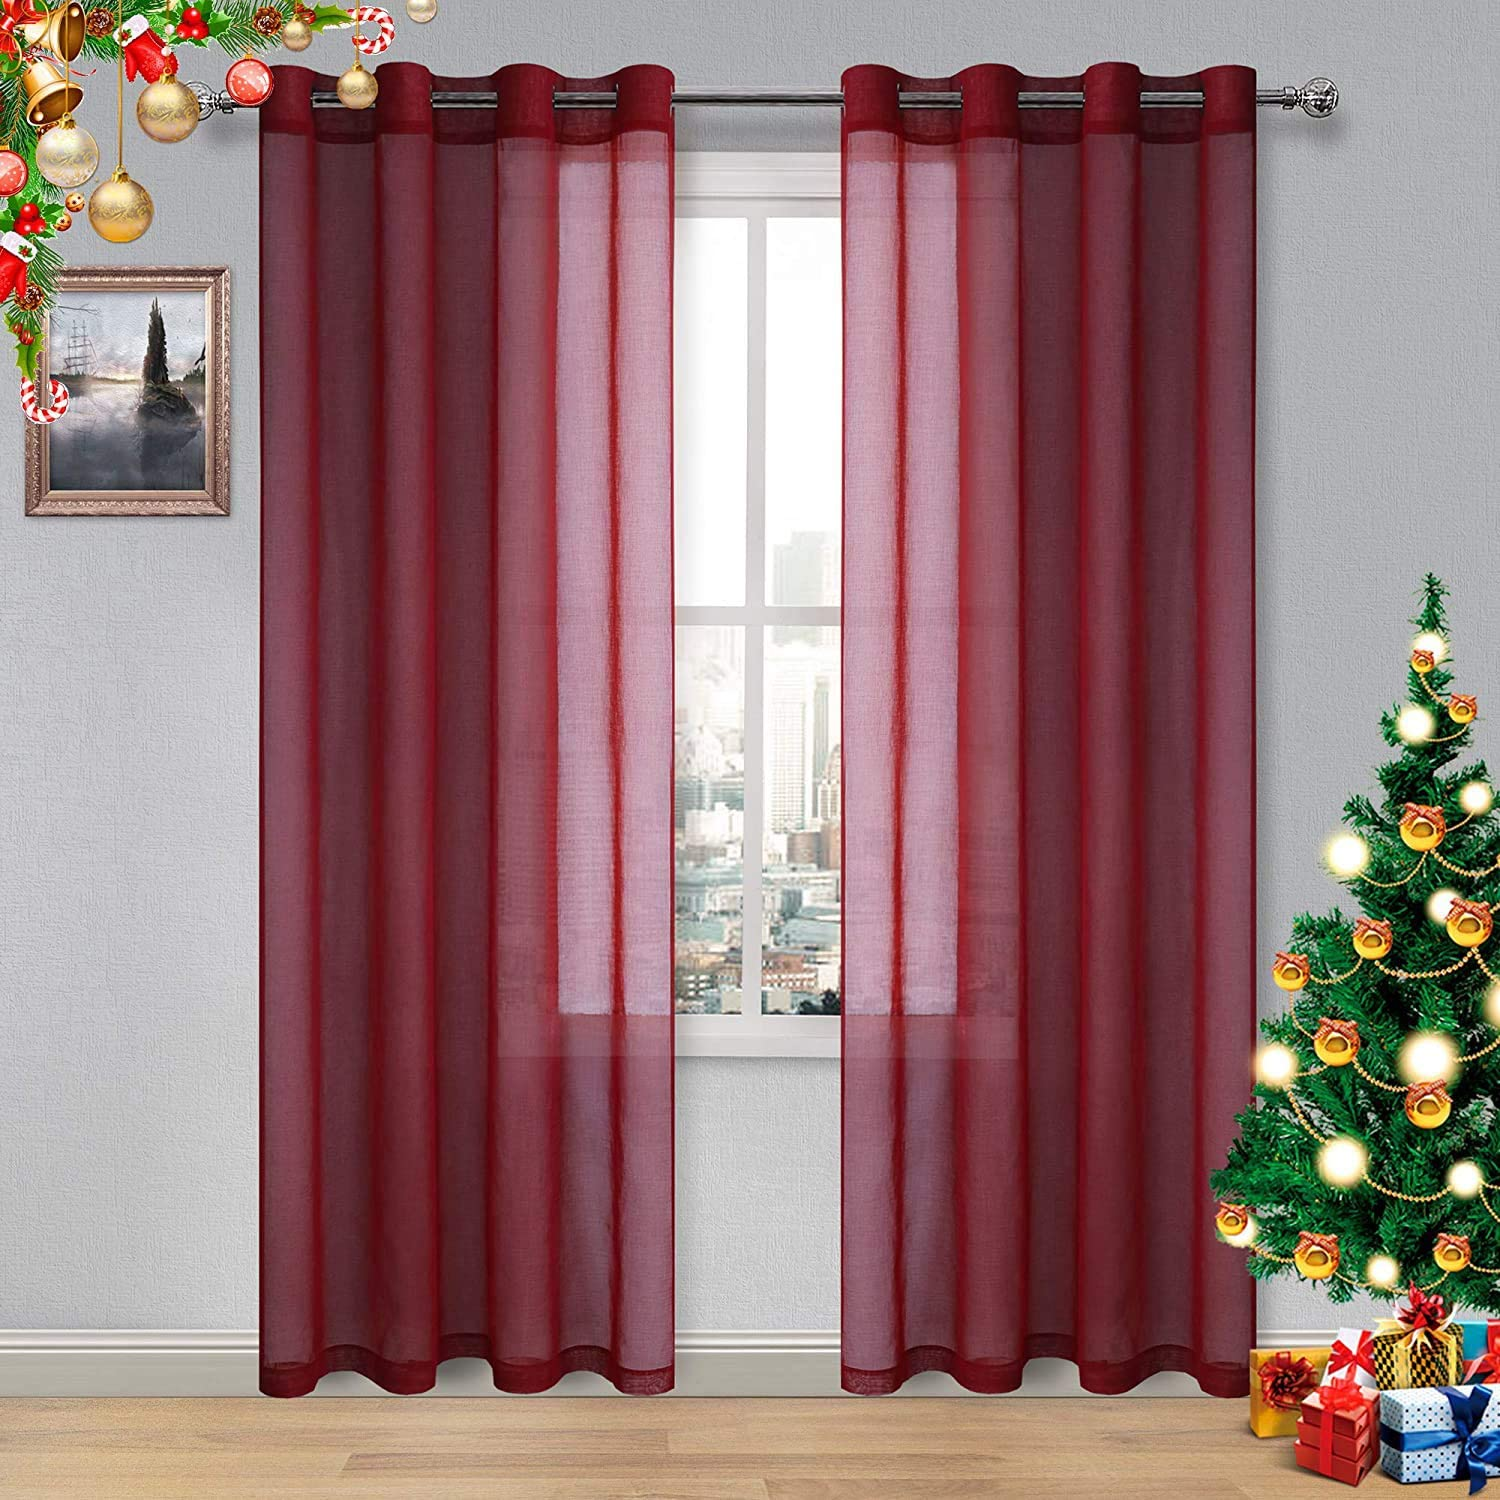 DWCN Amaranth Red Sheer Curtains Bedroom Curtains Faux Linen Voile Sheer Drapes Grommet Top Window Curtain Panel 52 x 108 inches Long,Set of 2 Panels